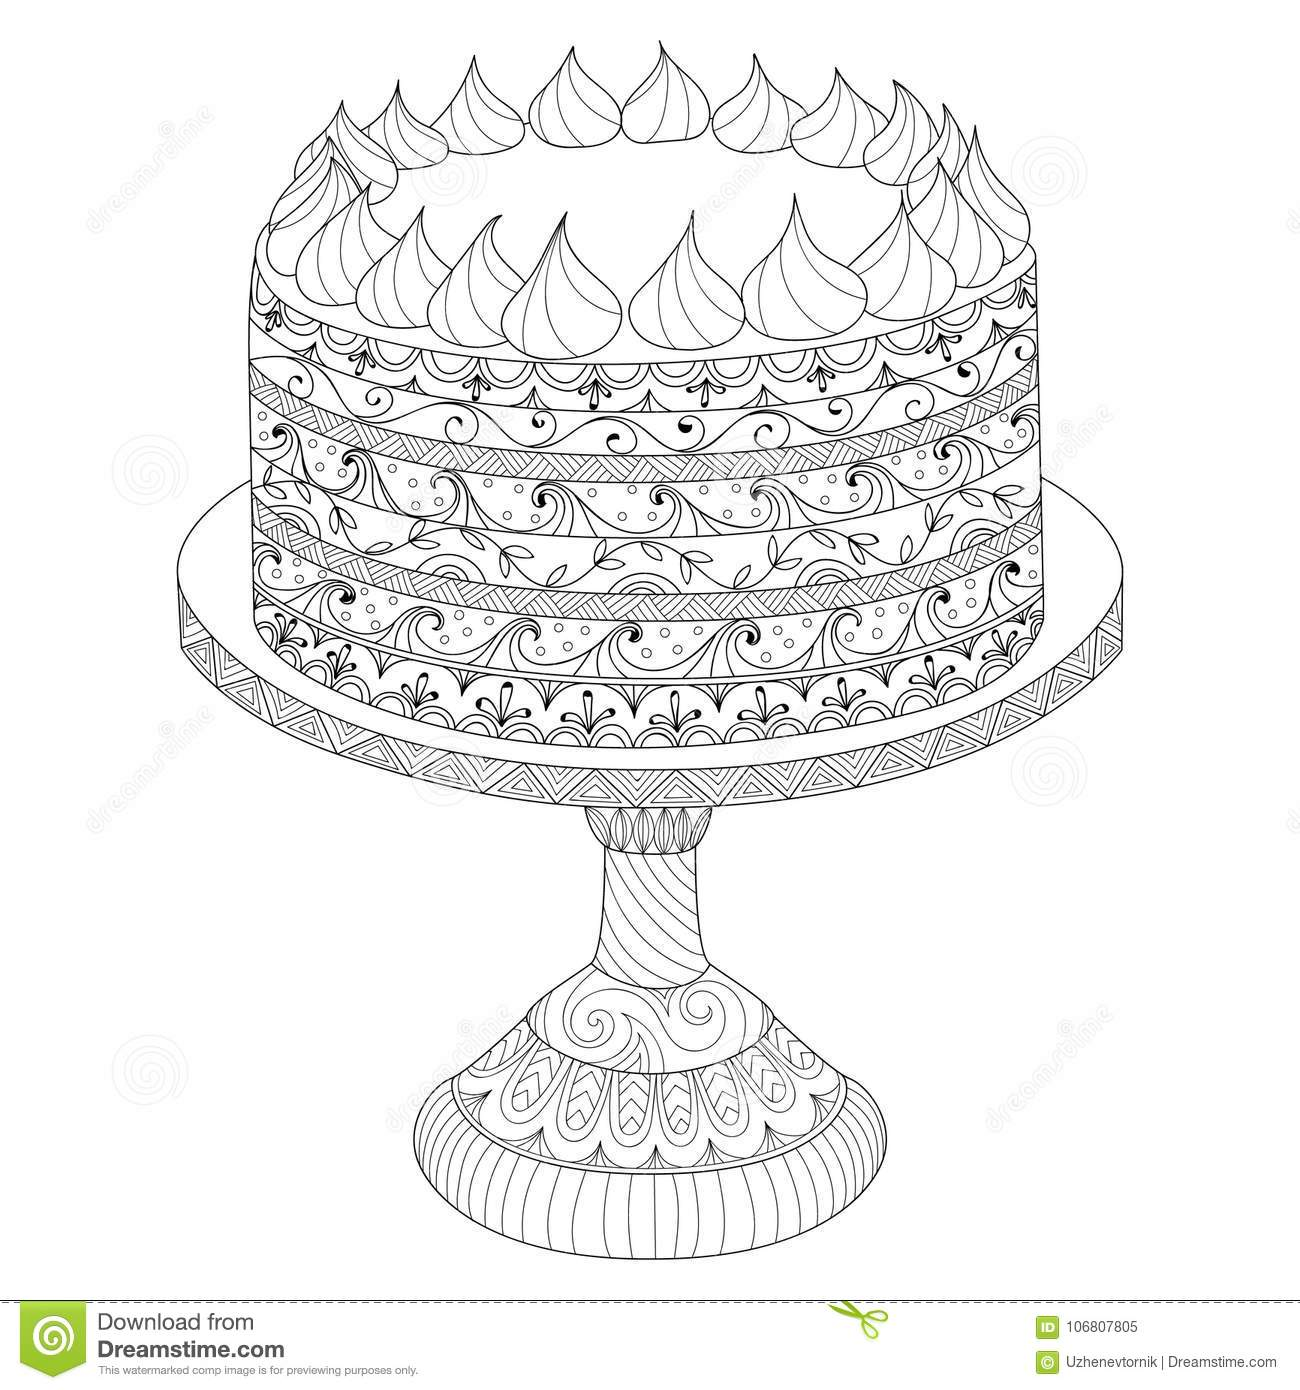 Hand Drawn Cake For Coloring Book Stock Vector - Illustration of ...